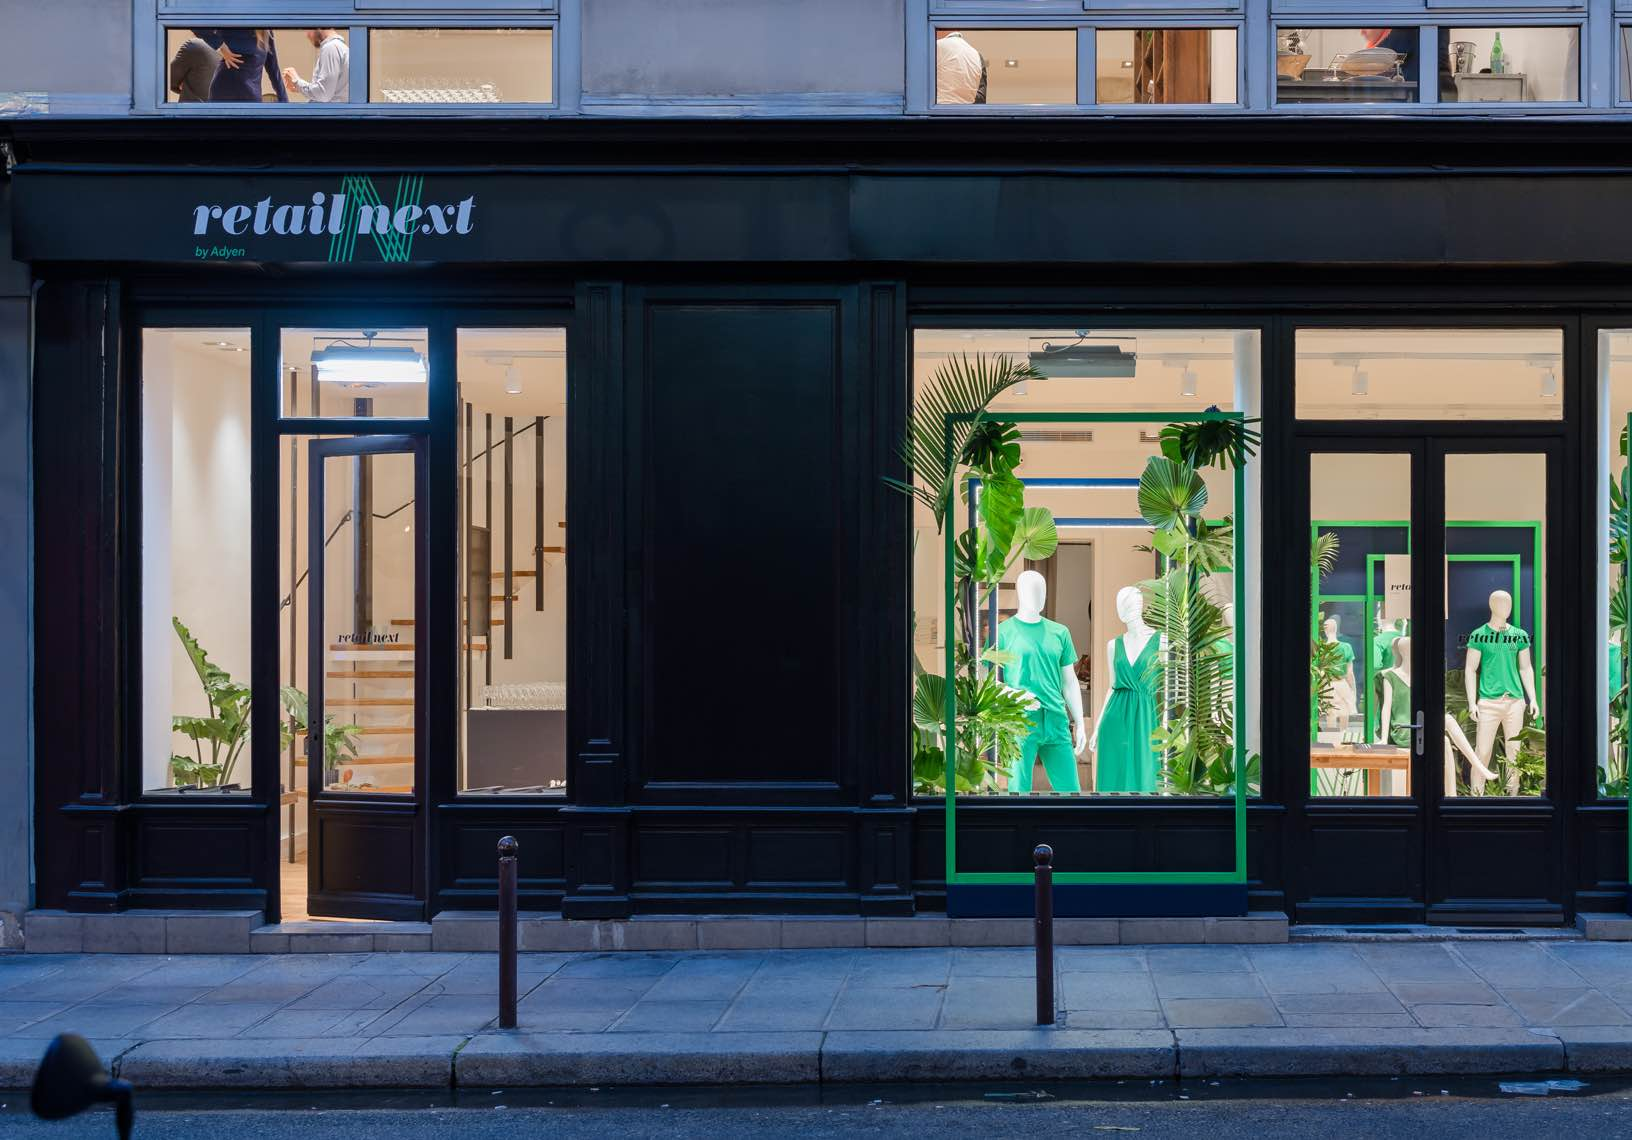 retail next by Adyen